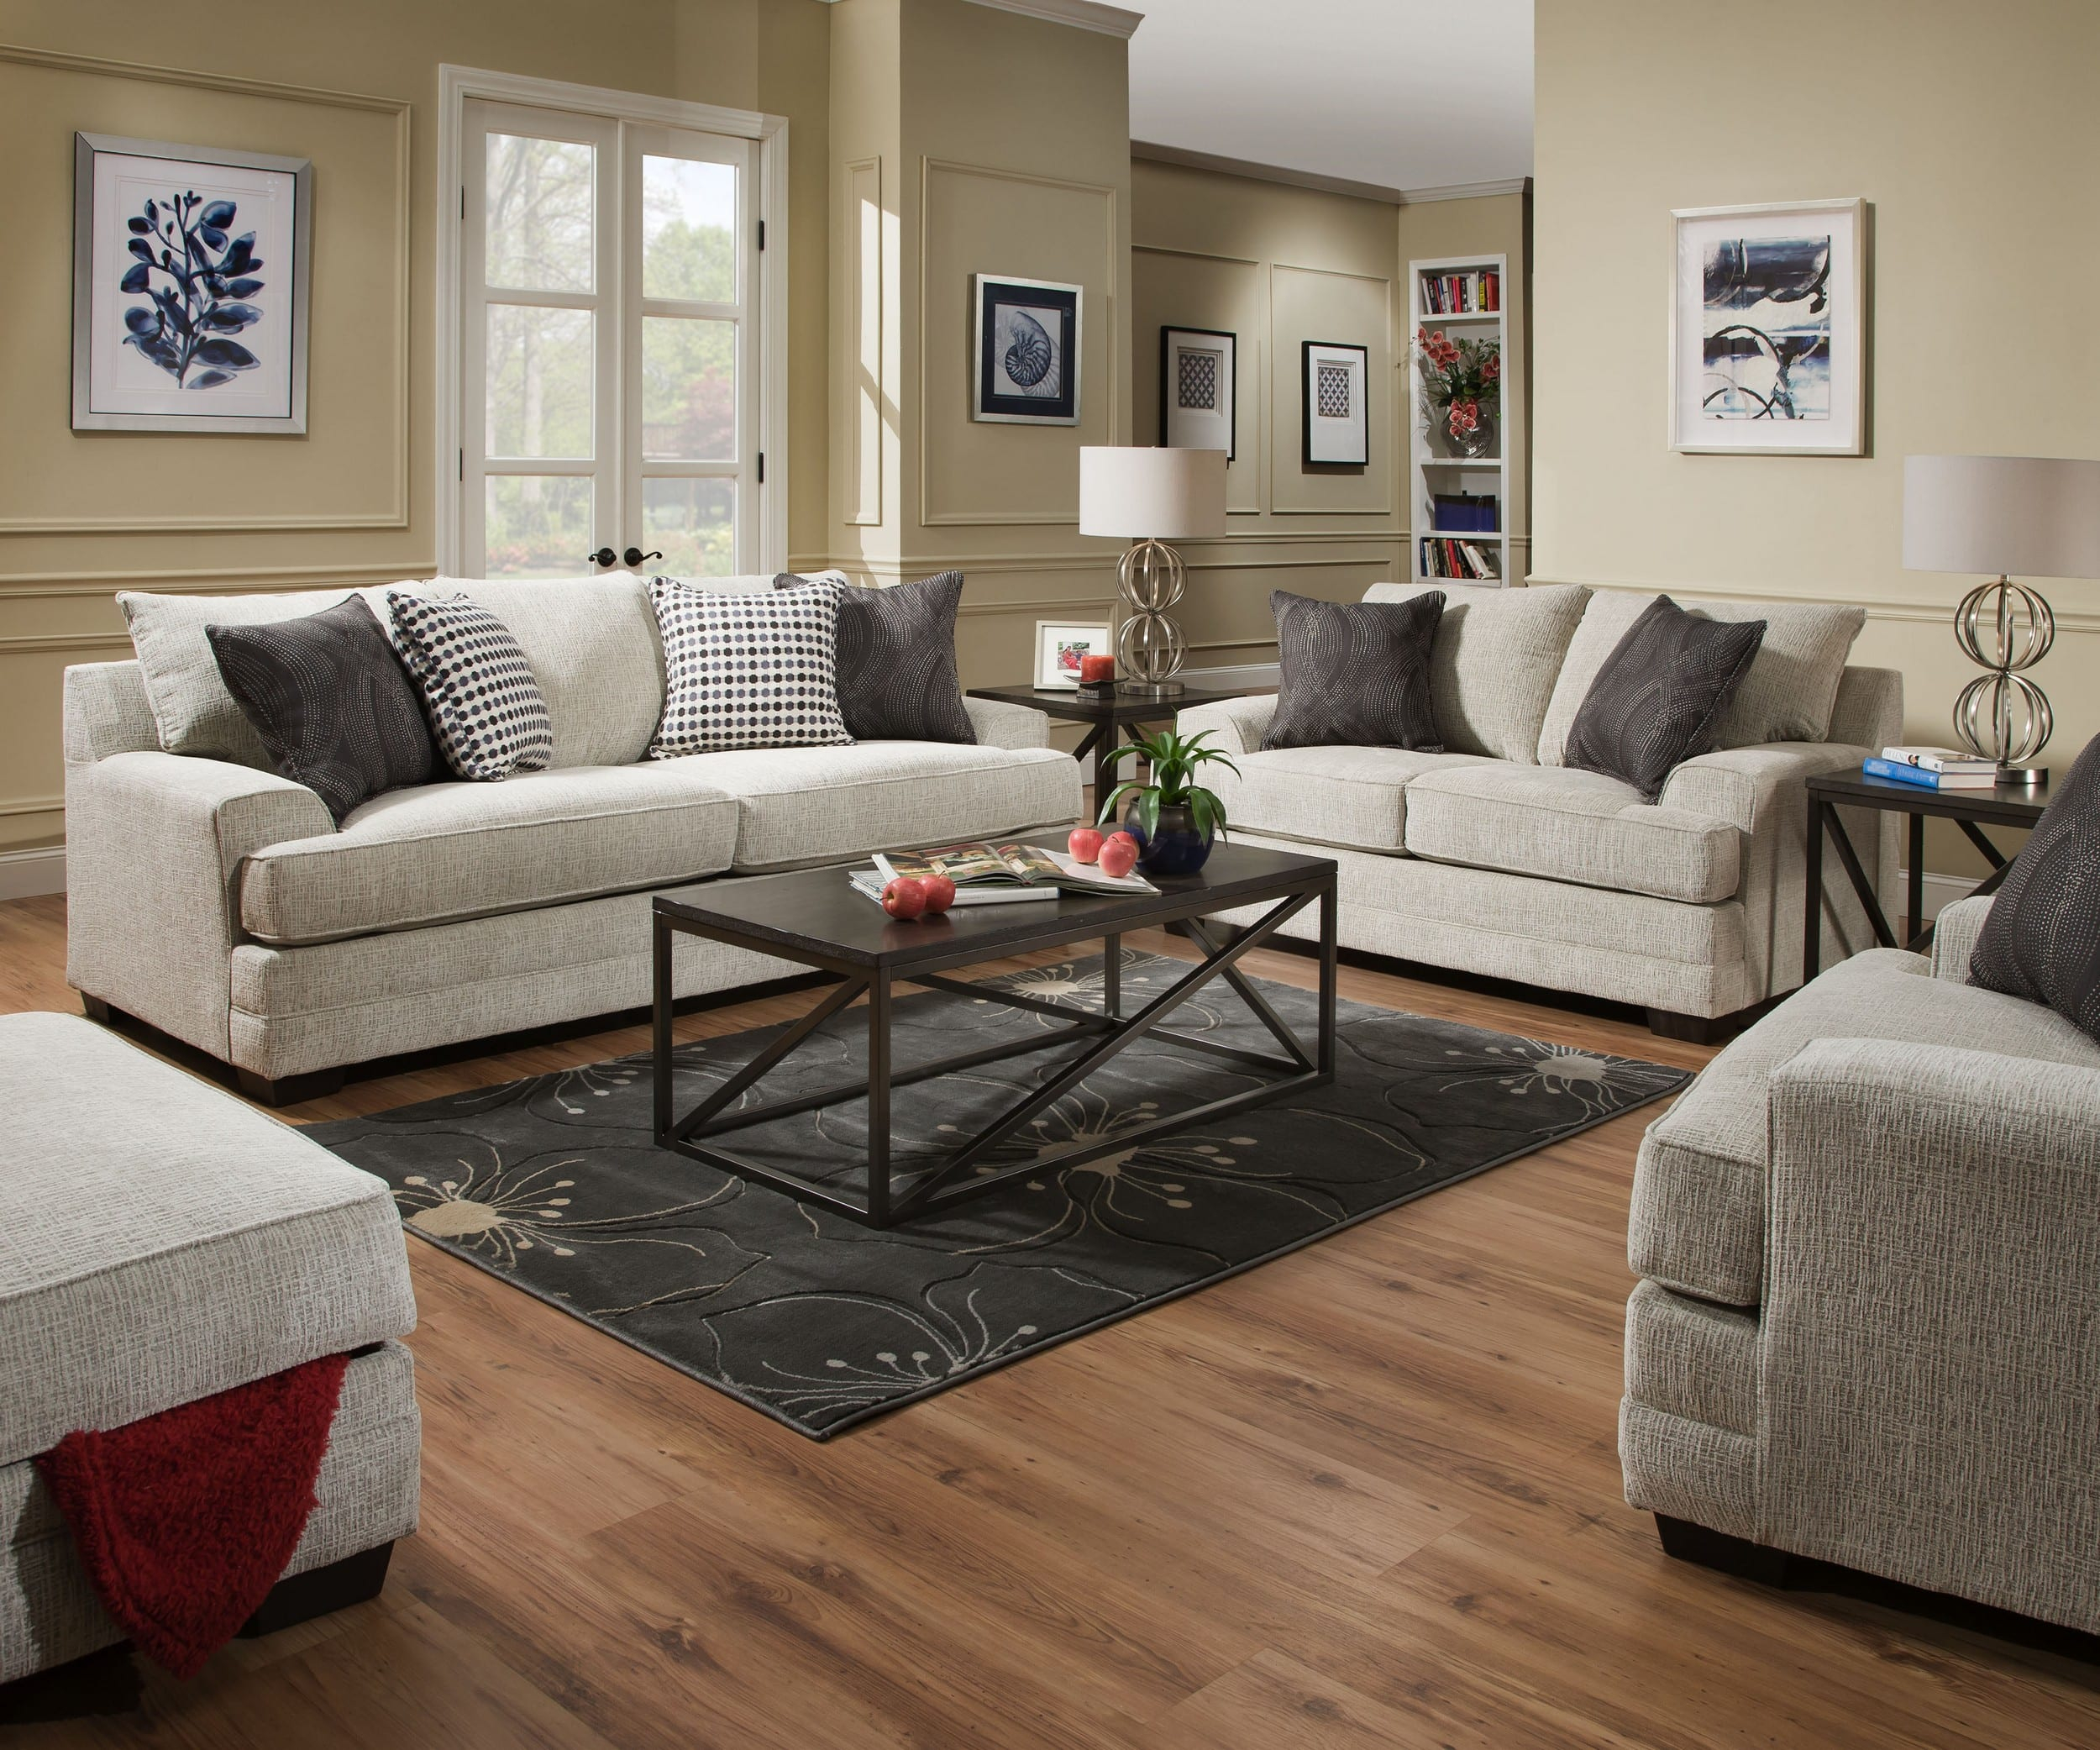 Simmons Upholstery 6548br 03 Dillon Driftwood 6548br 02 Dillon Driftwood 6548br 01 Dillon Driftwood for 12 Awesome Concepts of How to Improve Living Room Set 3 Piece